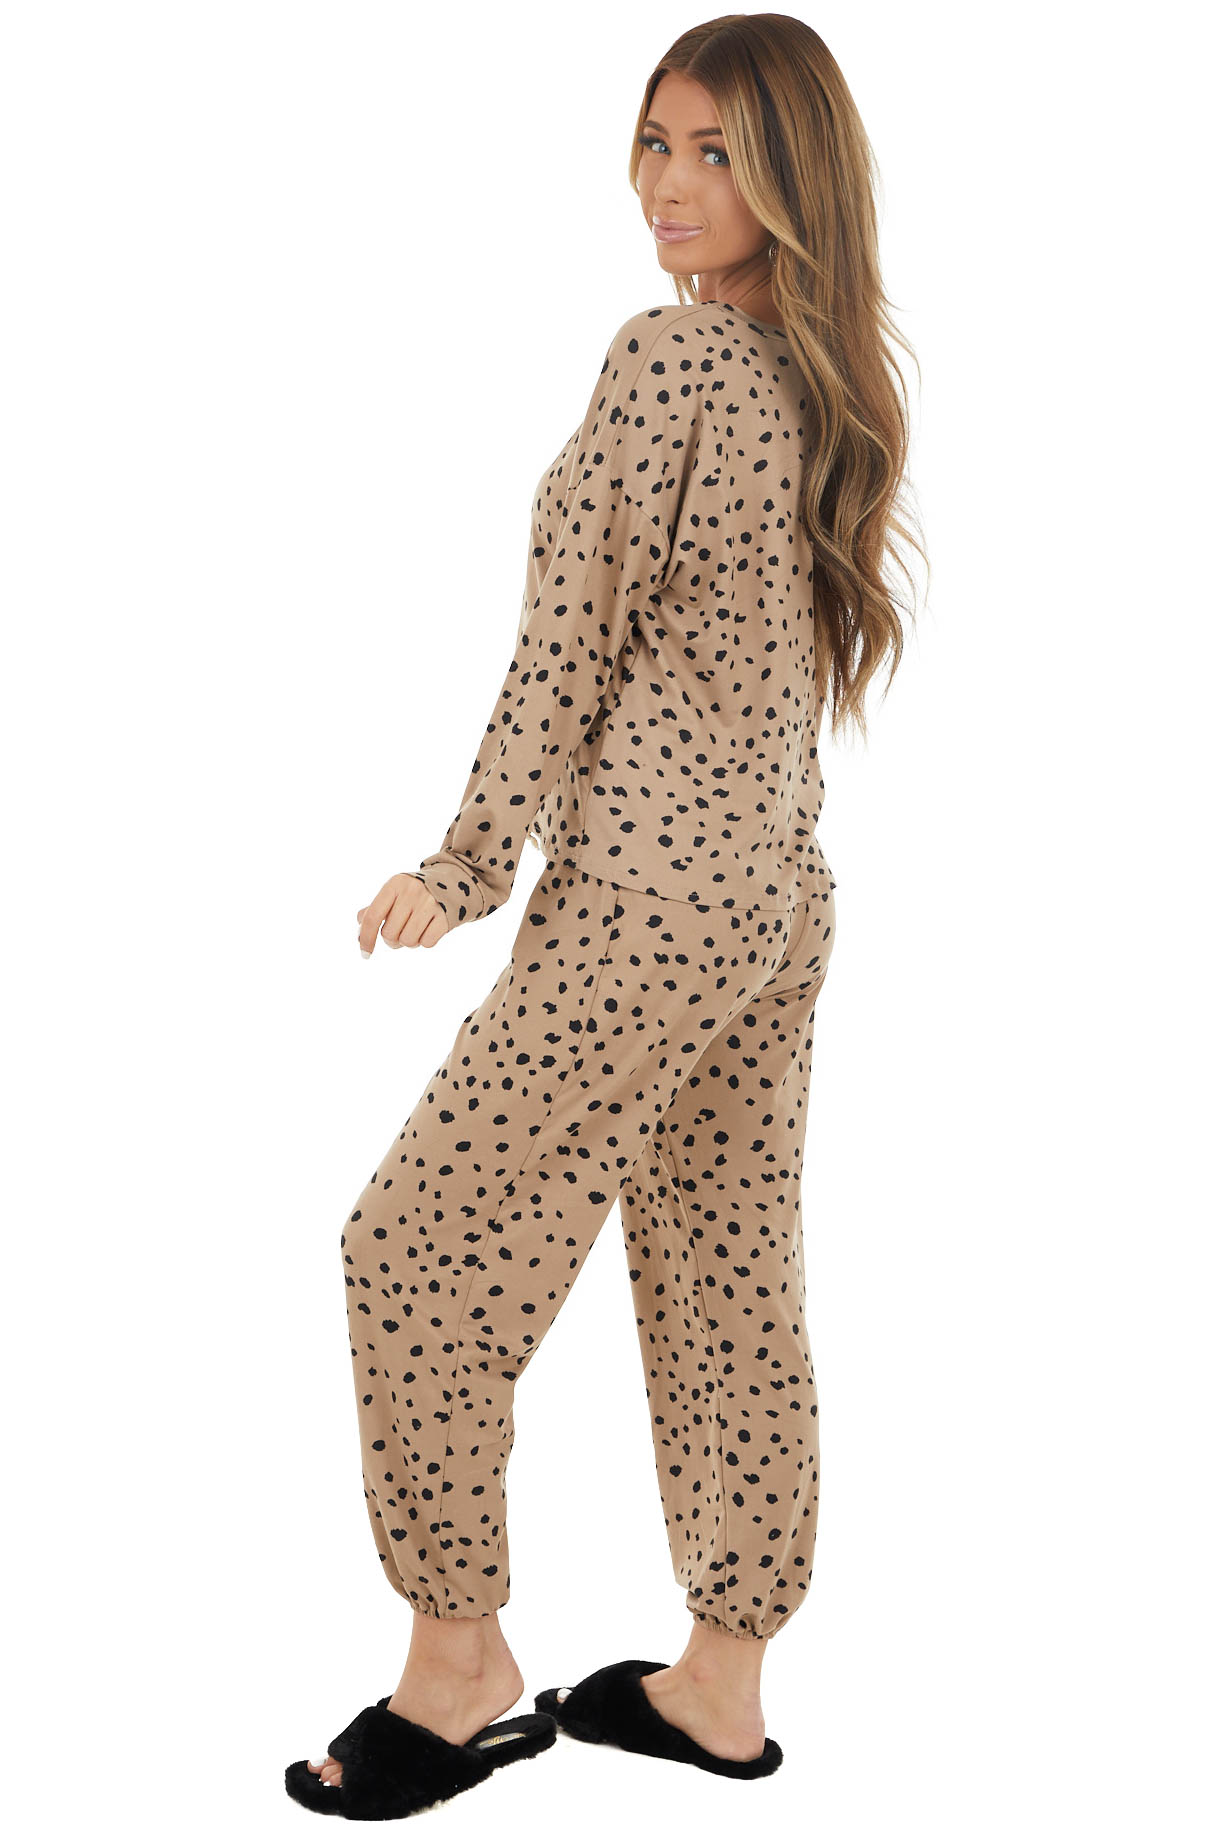 Latte and Black Cheetah Print Super Soft Long Sleeve Top